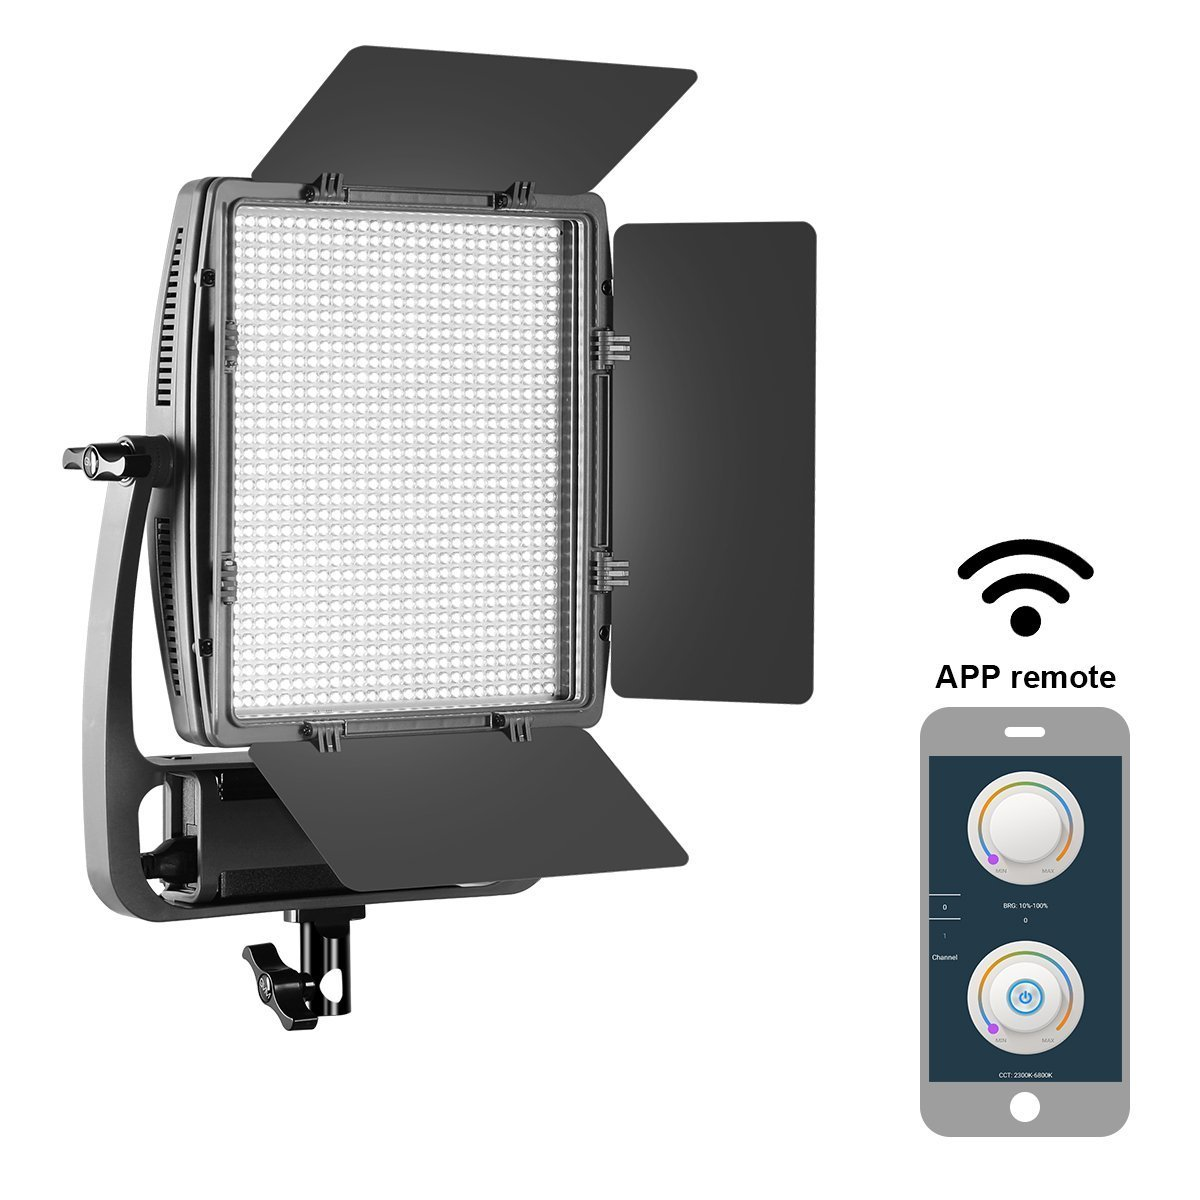 GVM Dimmable Bi-Color S900D LED Video Light and Stand Lighting Kit, with APP Intelligent Control System/CRI97 Dimmable 3200-5600K Continuous Lighting GVM